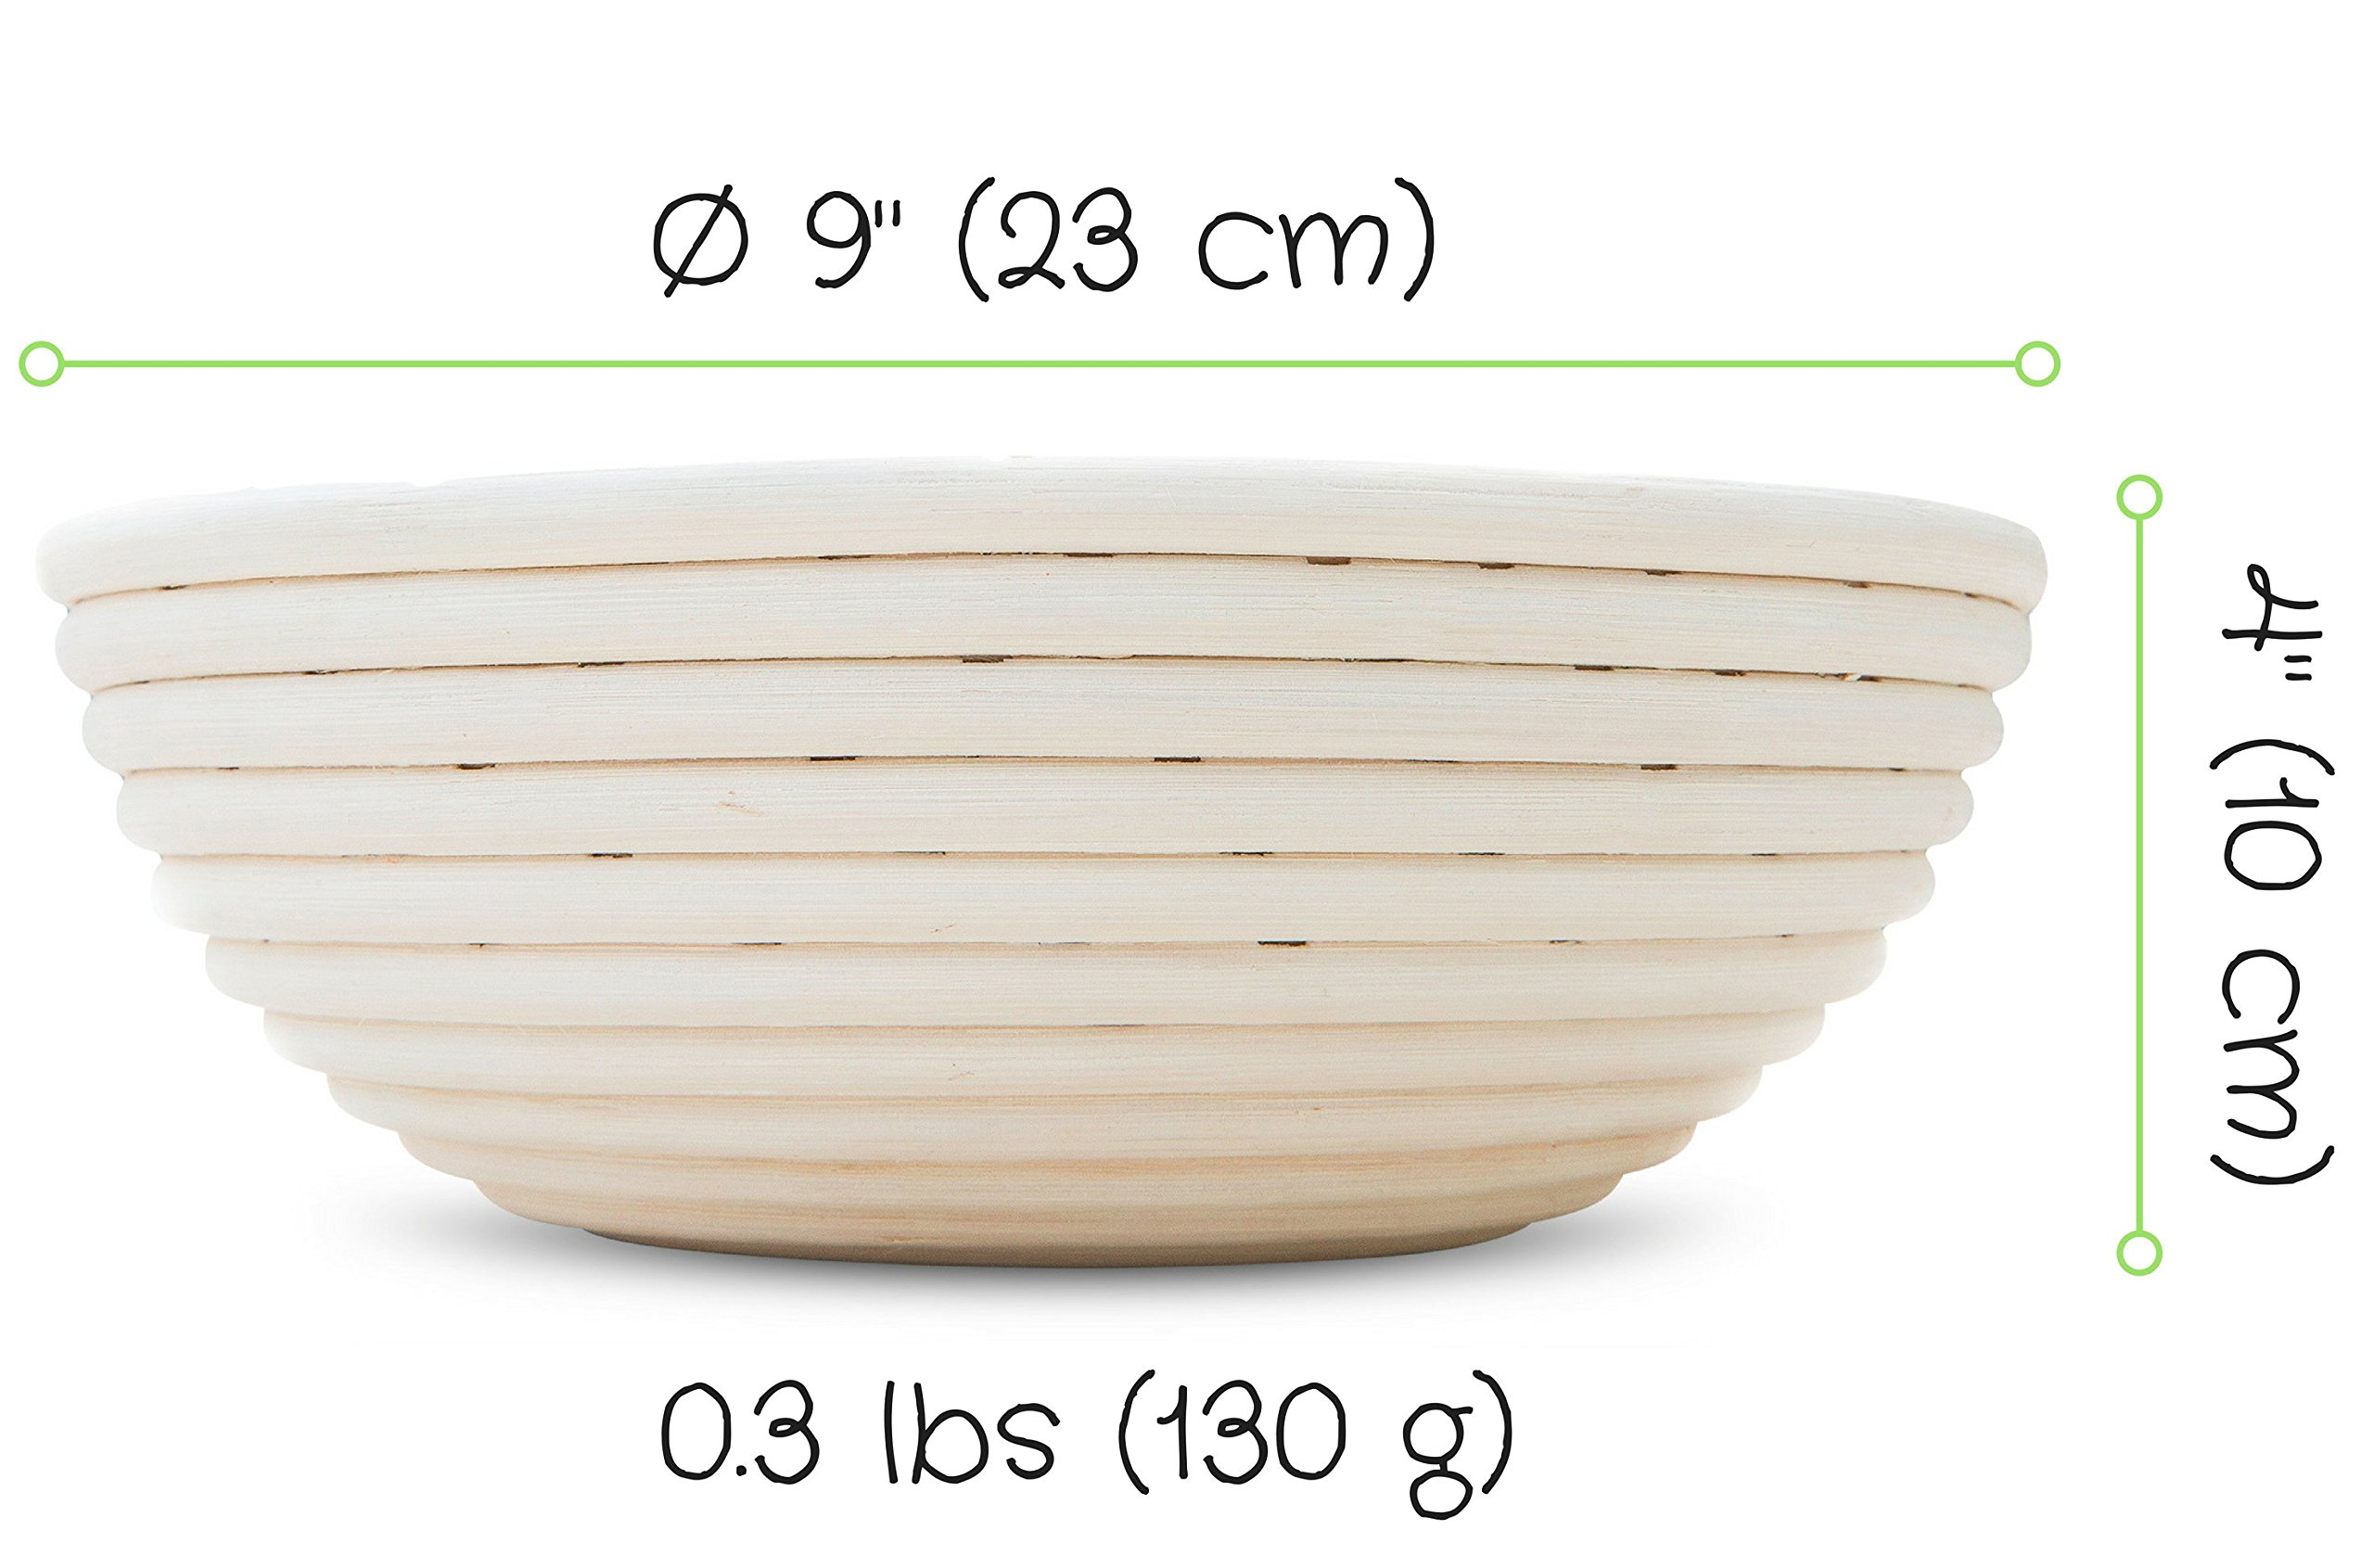 9'' Inch Round Banneton Proofing Basket for Artisan Bread And Dough. E-Book Included With Instructions, Ideas And Recipes. Eco-Friendly Rattan Cane Brotform With Rising Pattern For Artisan Baking. by Pingo Gear (Image #2)